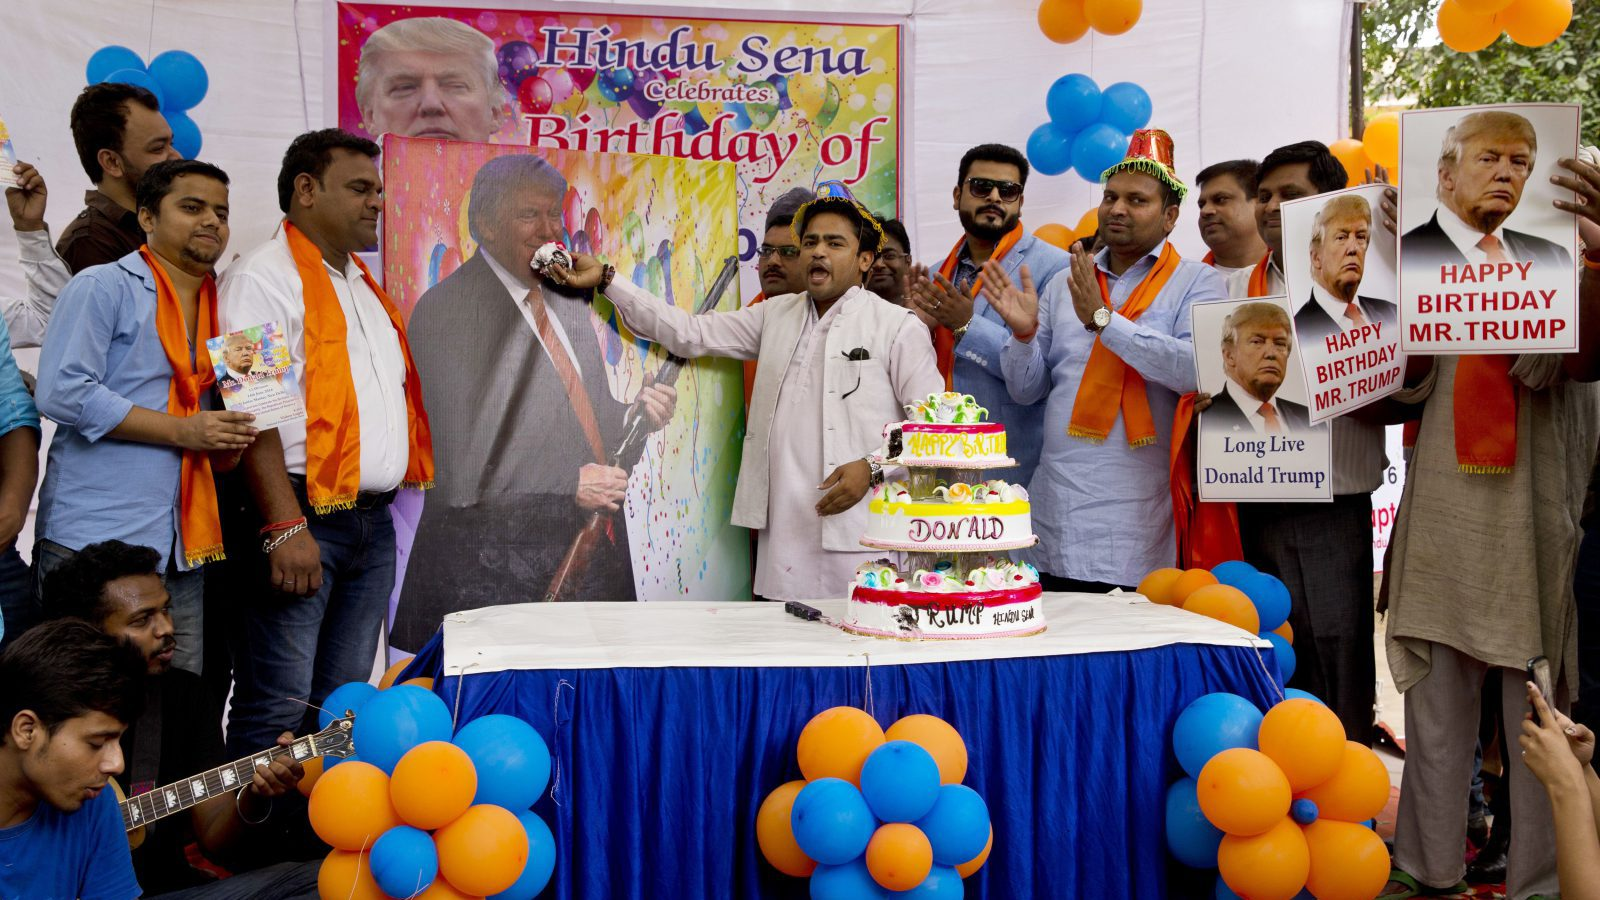 Members of Hindu nationalist party 'Hindu Sena' or Hindu Army, celebrate the birthday of U.S. presidential candidate Donald Trump in New Delhi, India, Tuesday, June 14, 2016.